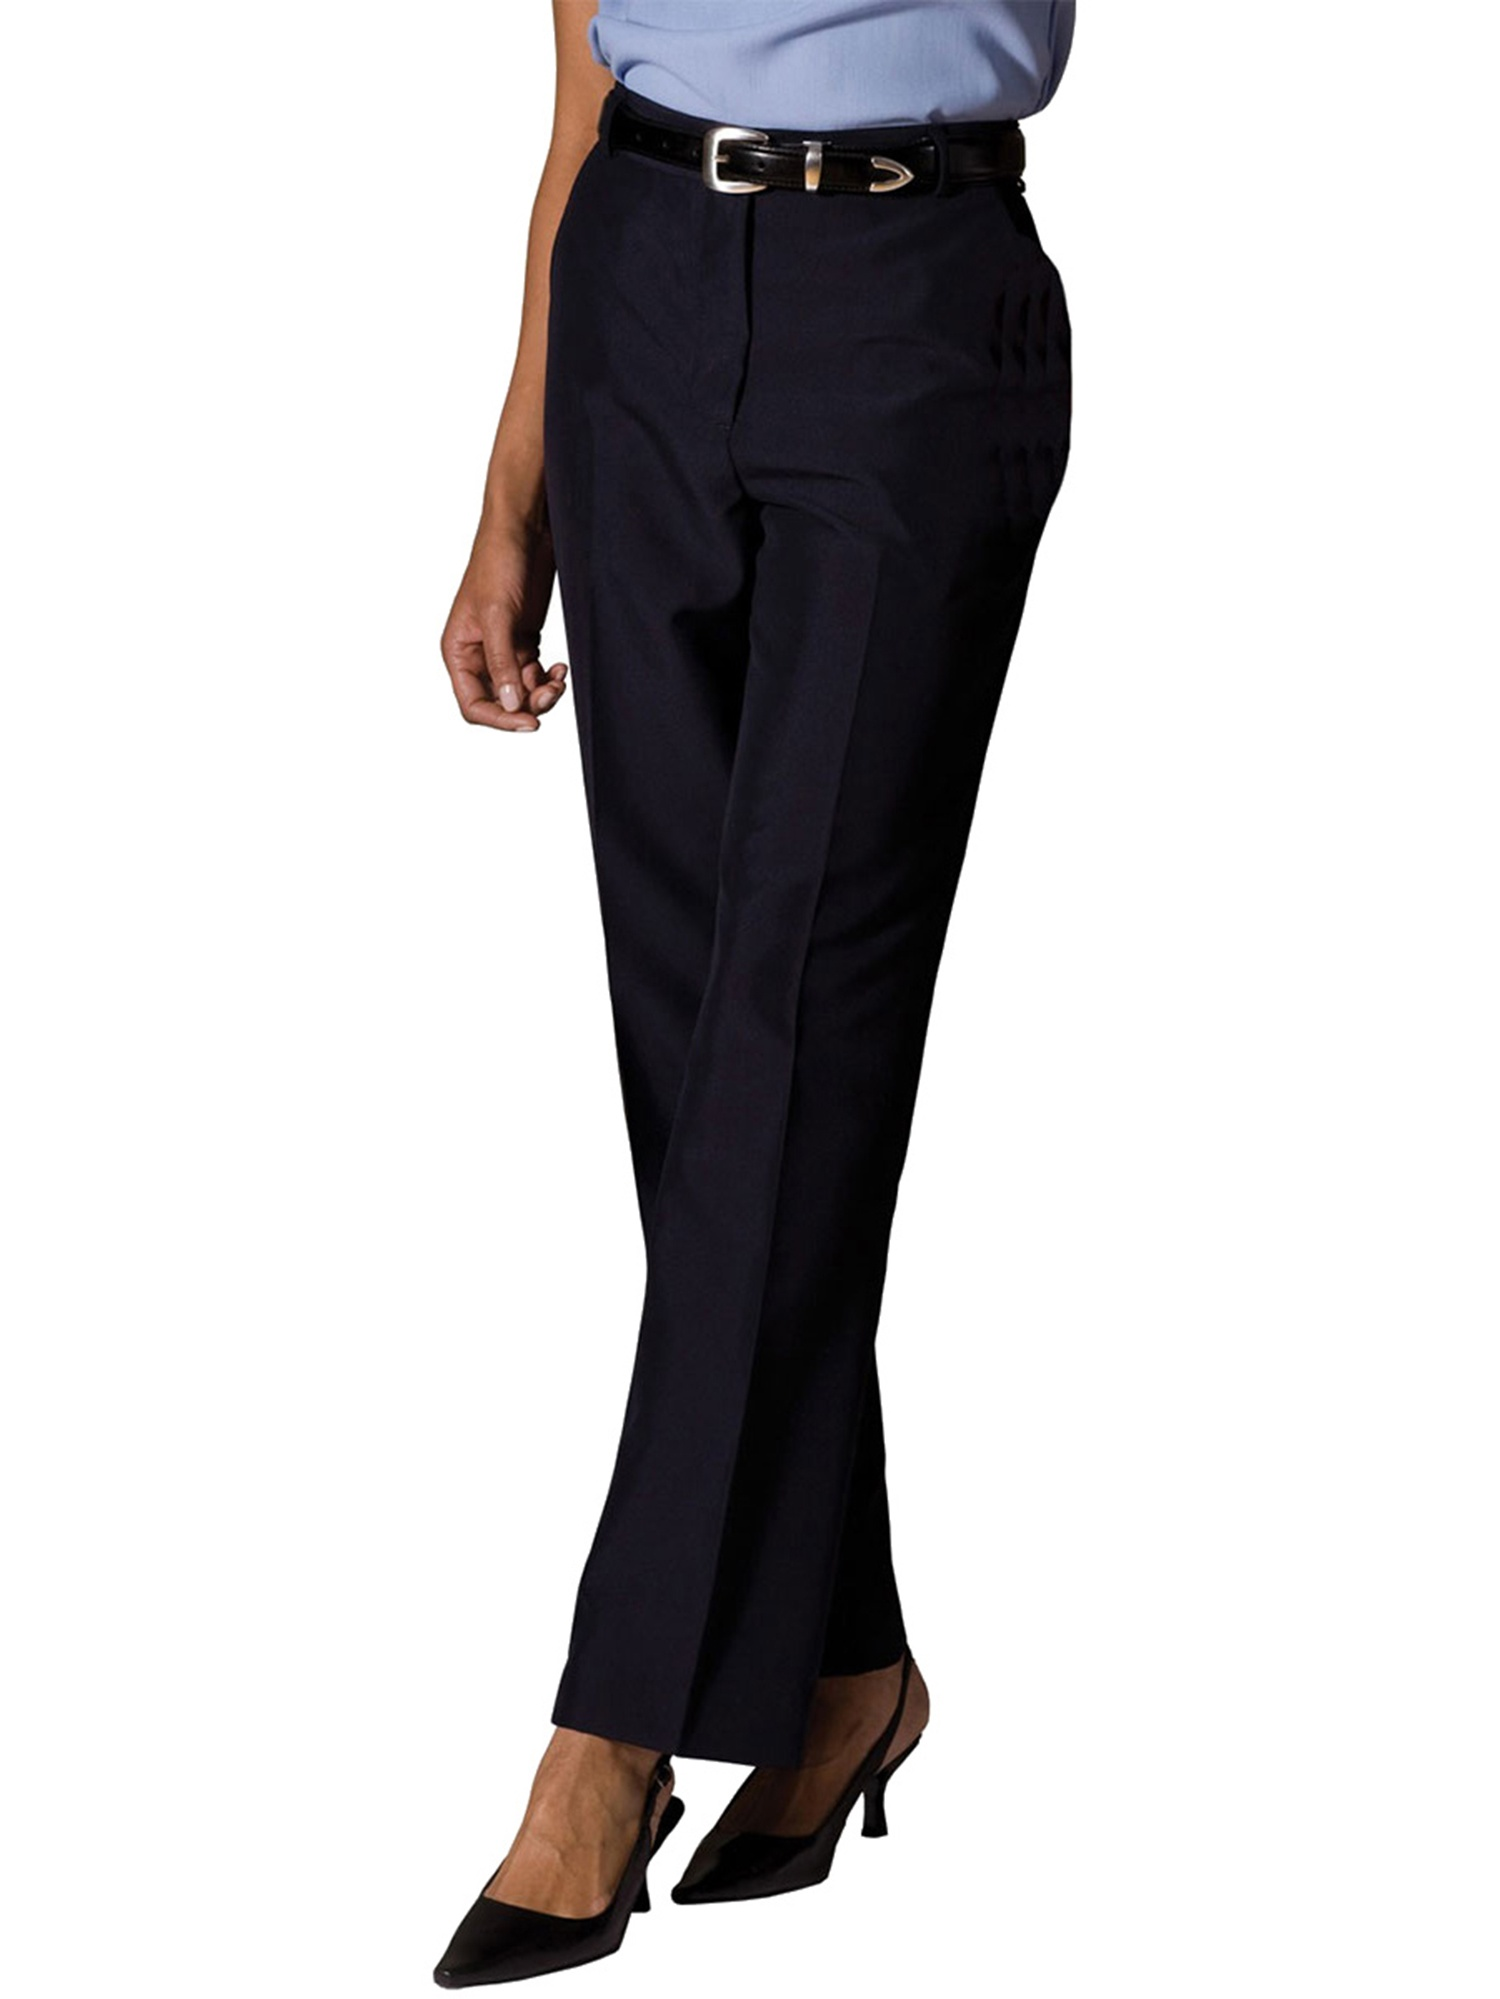 Edwards Garment Women's Flat Front Pant